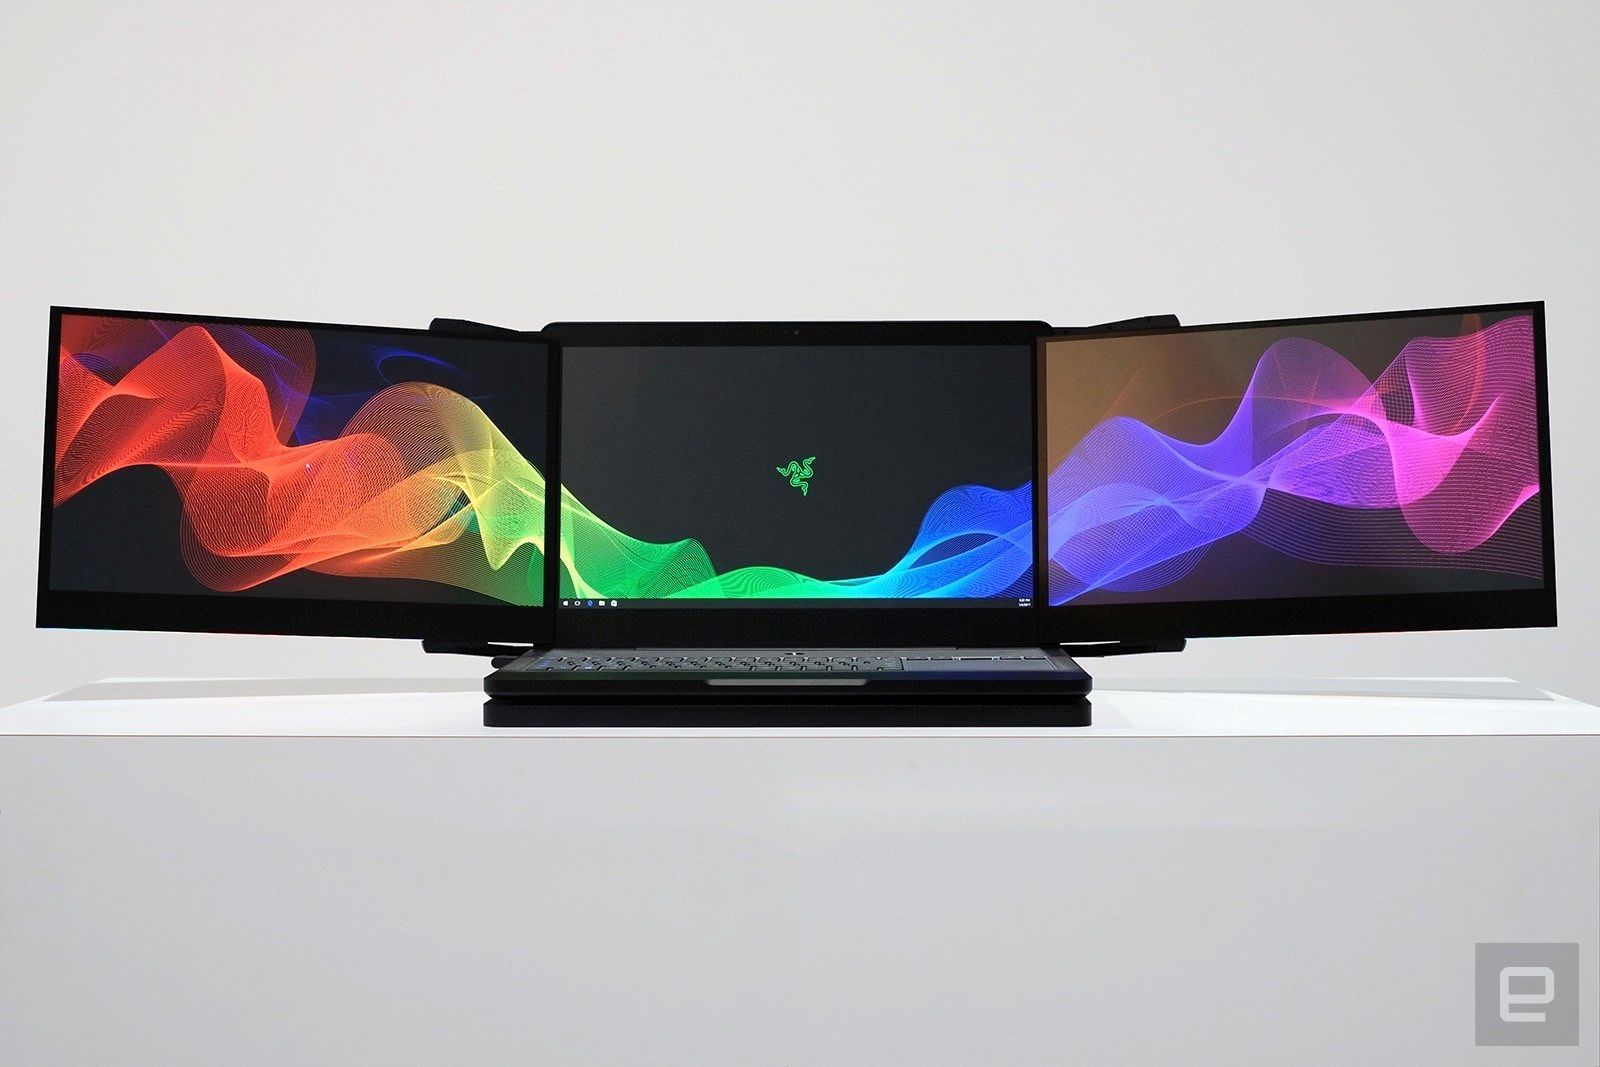 Razer Has Built A Laptop With Three 4K Displays And It's Gloriously